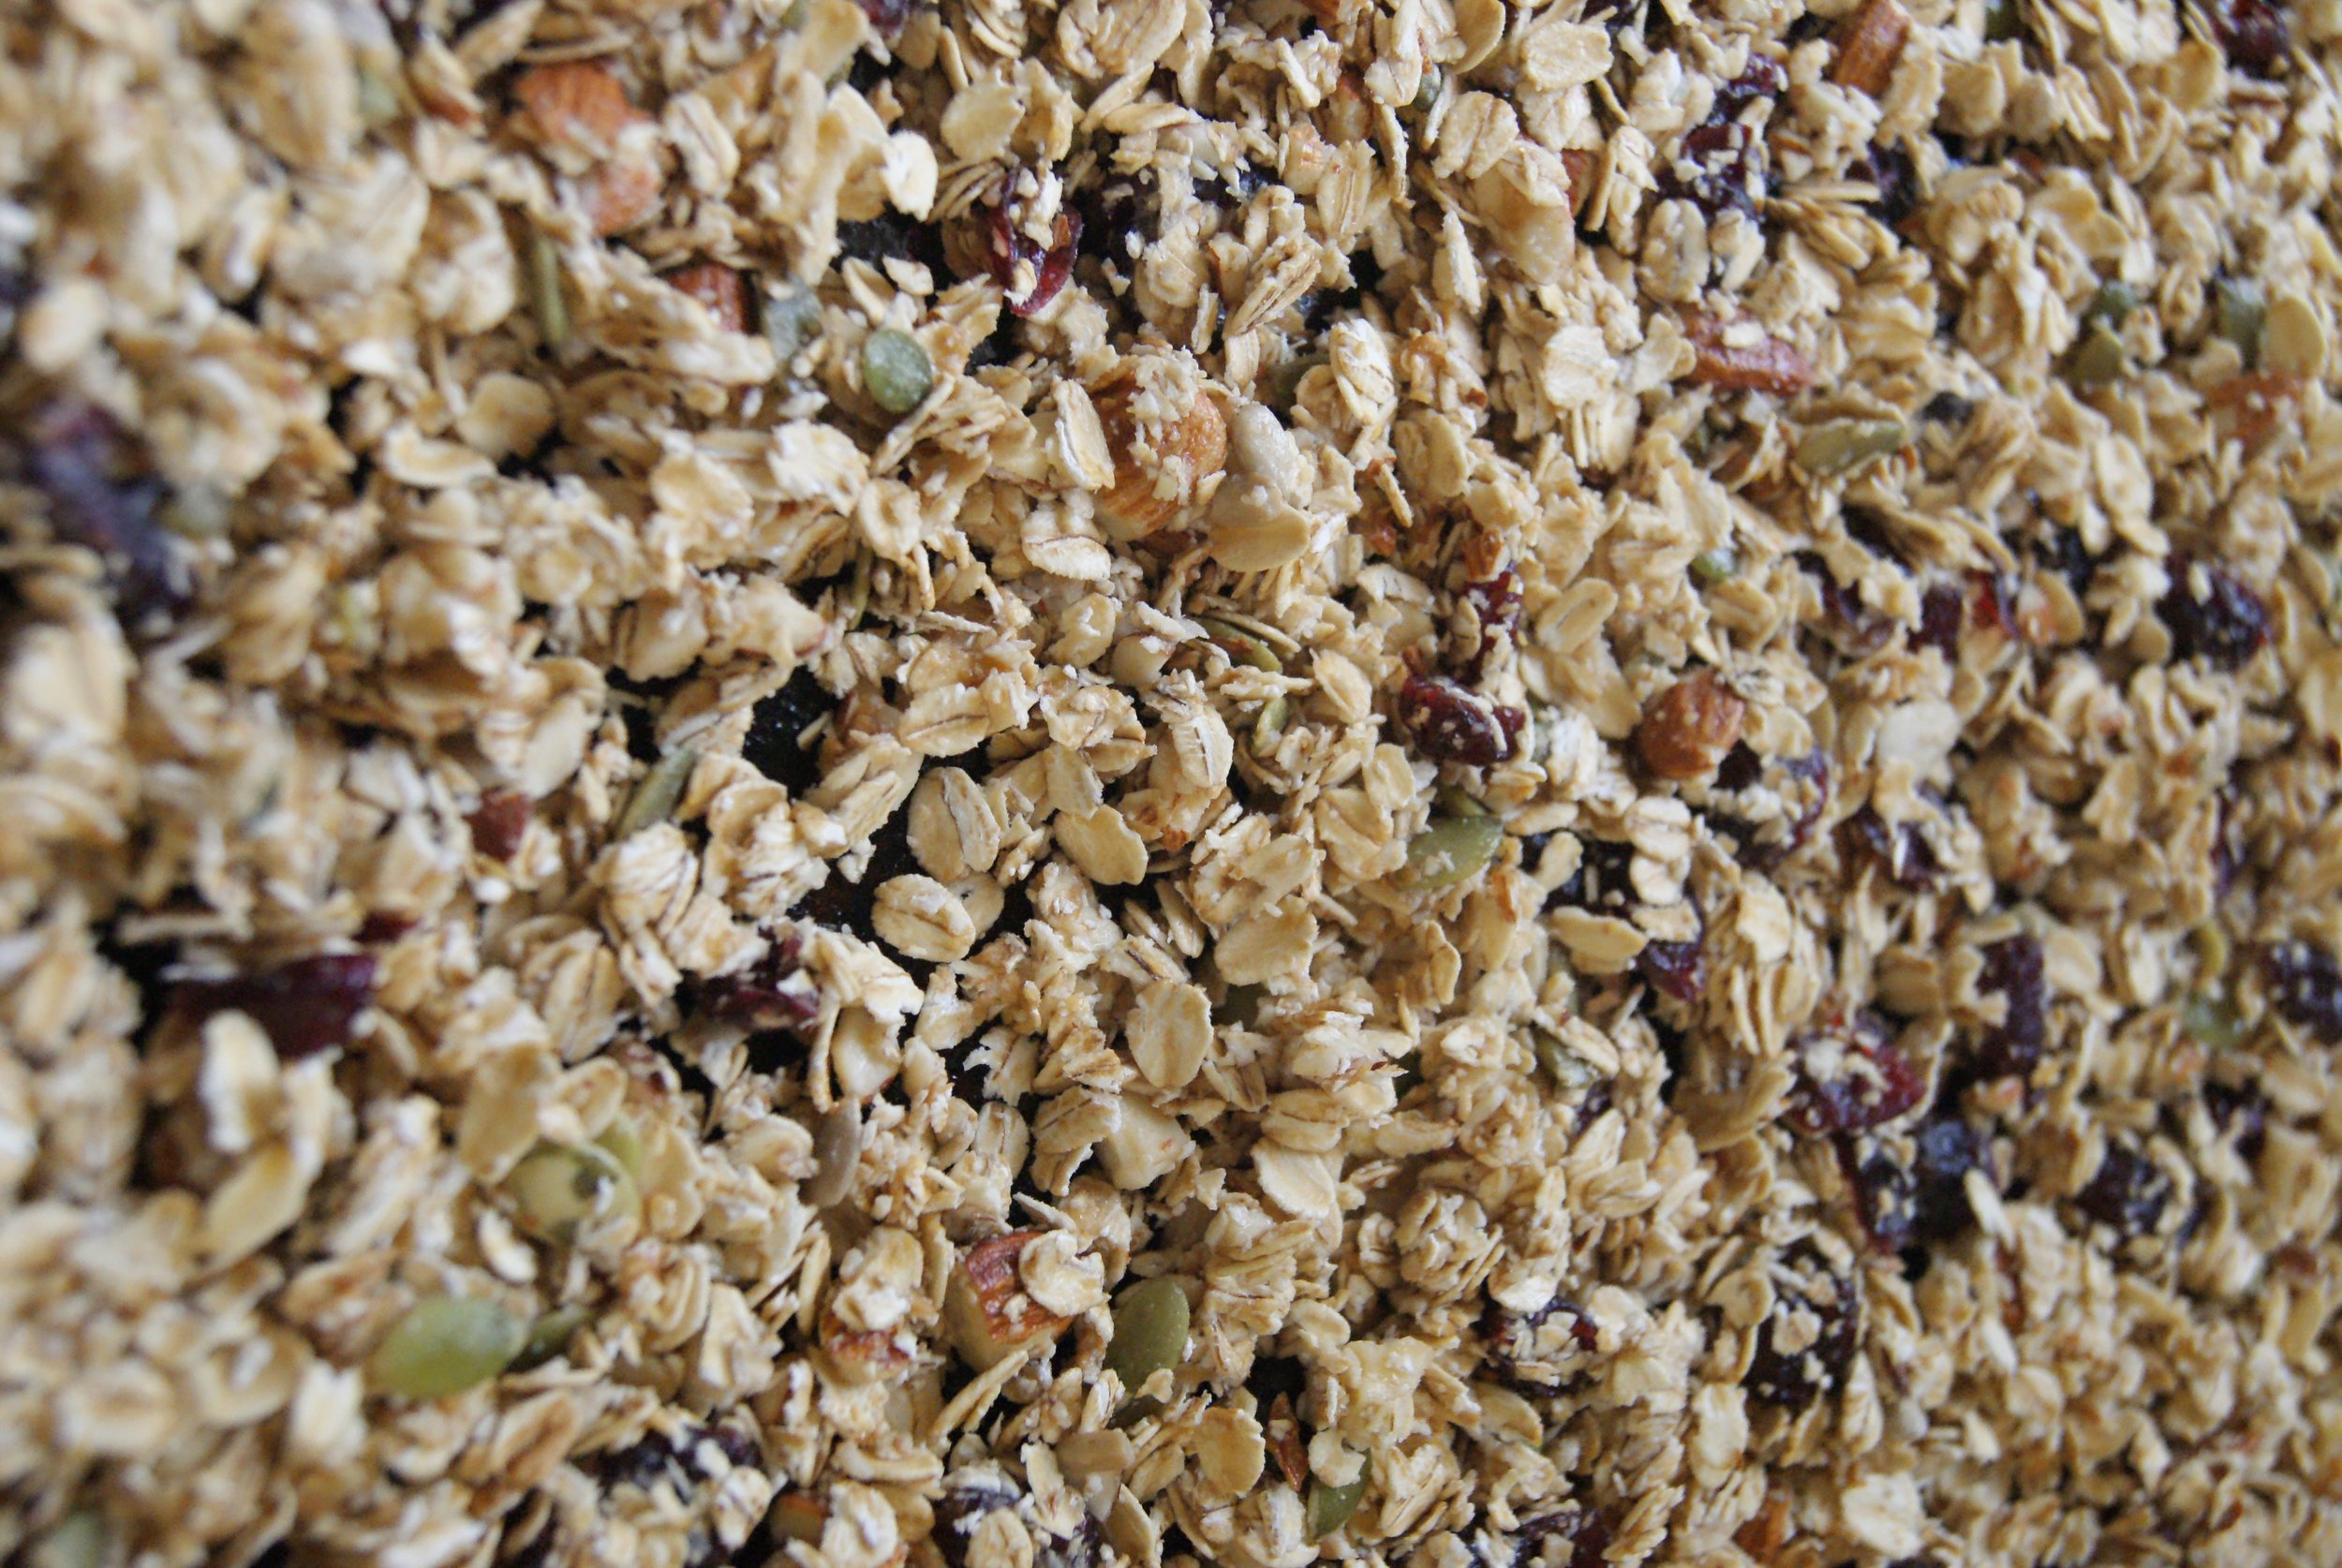 Upclose-and-personal with granola